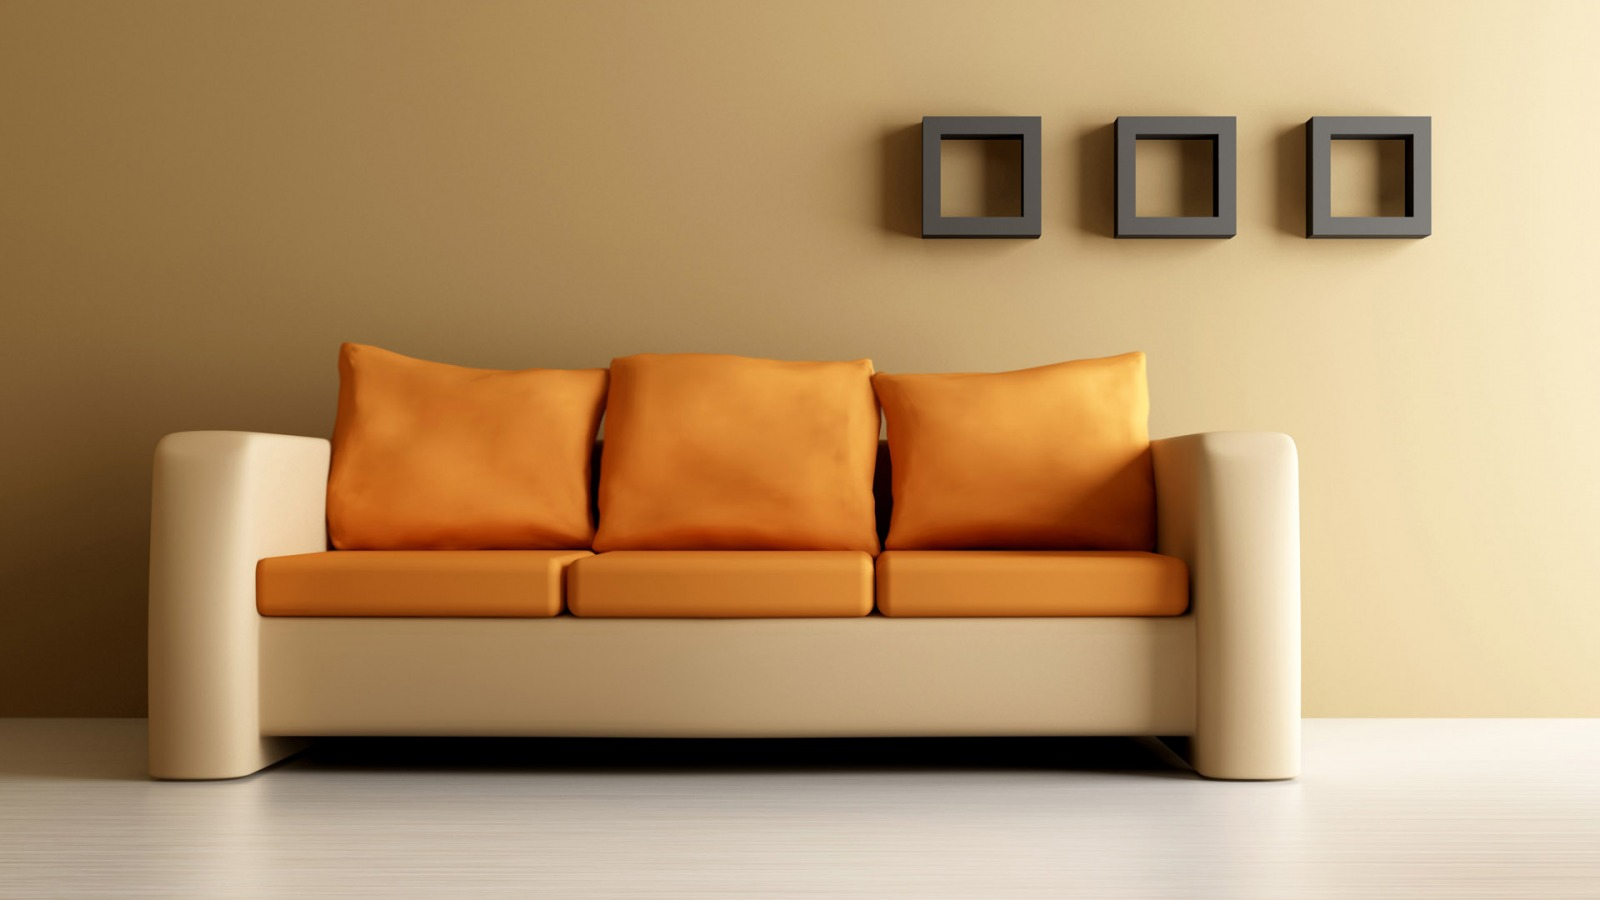 Orange Couch Wallpaper Interior Design Other Wallpapers